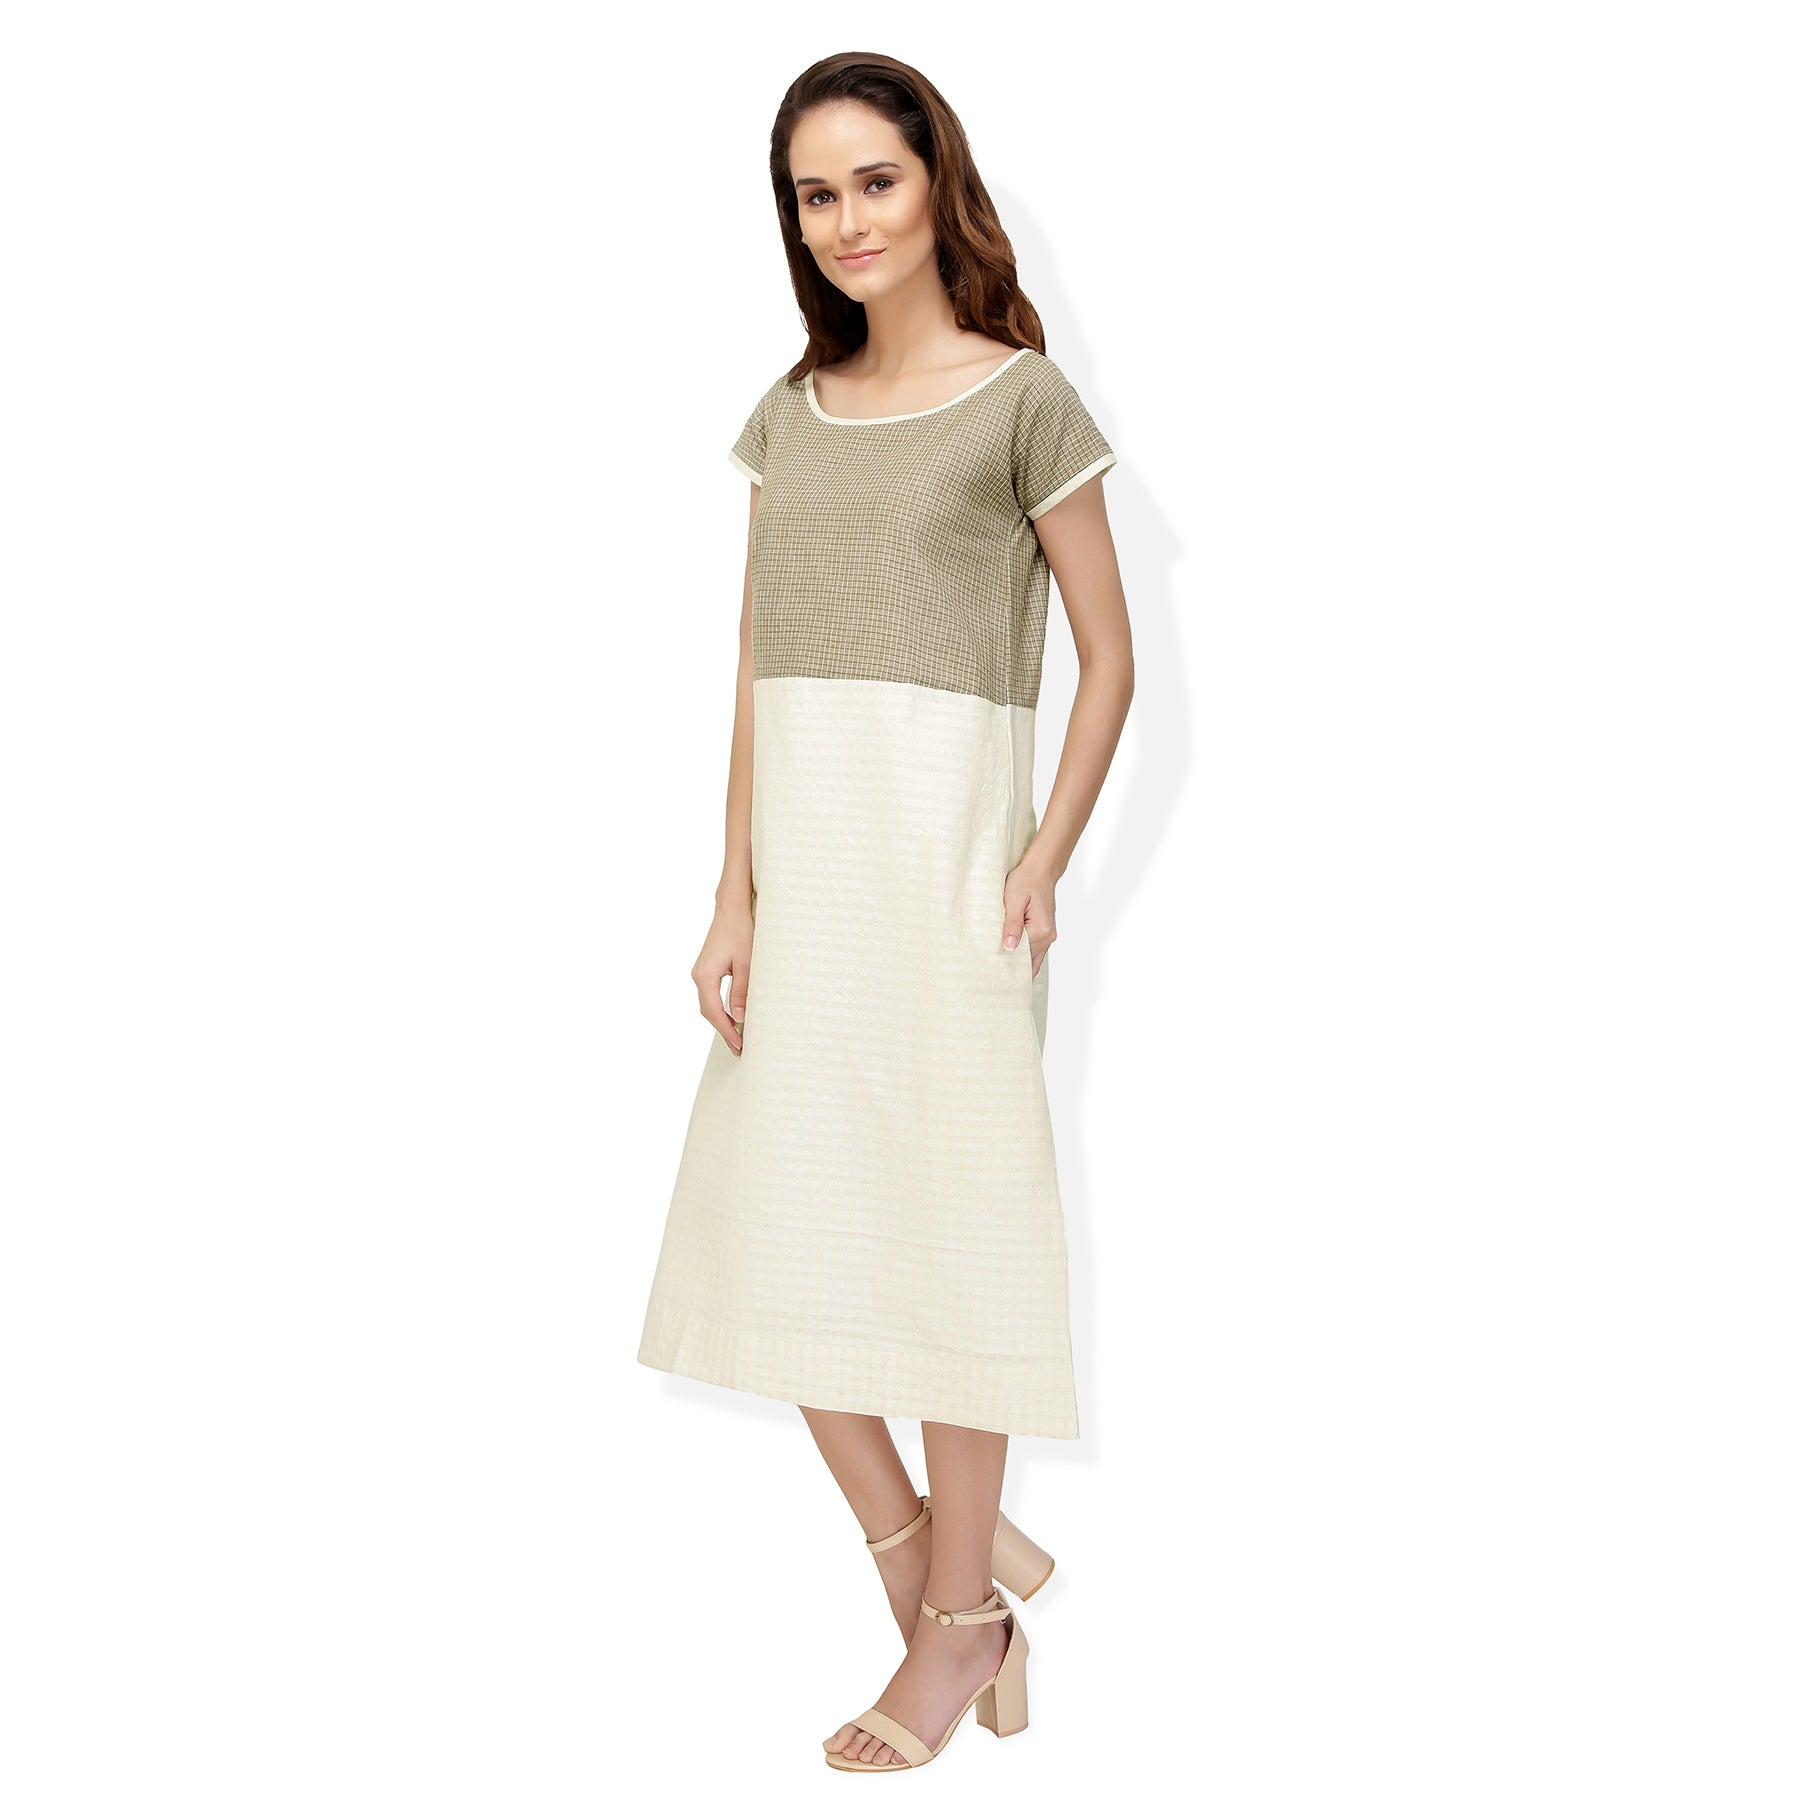 Handloom Dresses for Women Online India